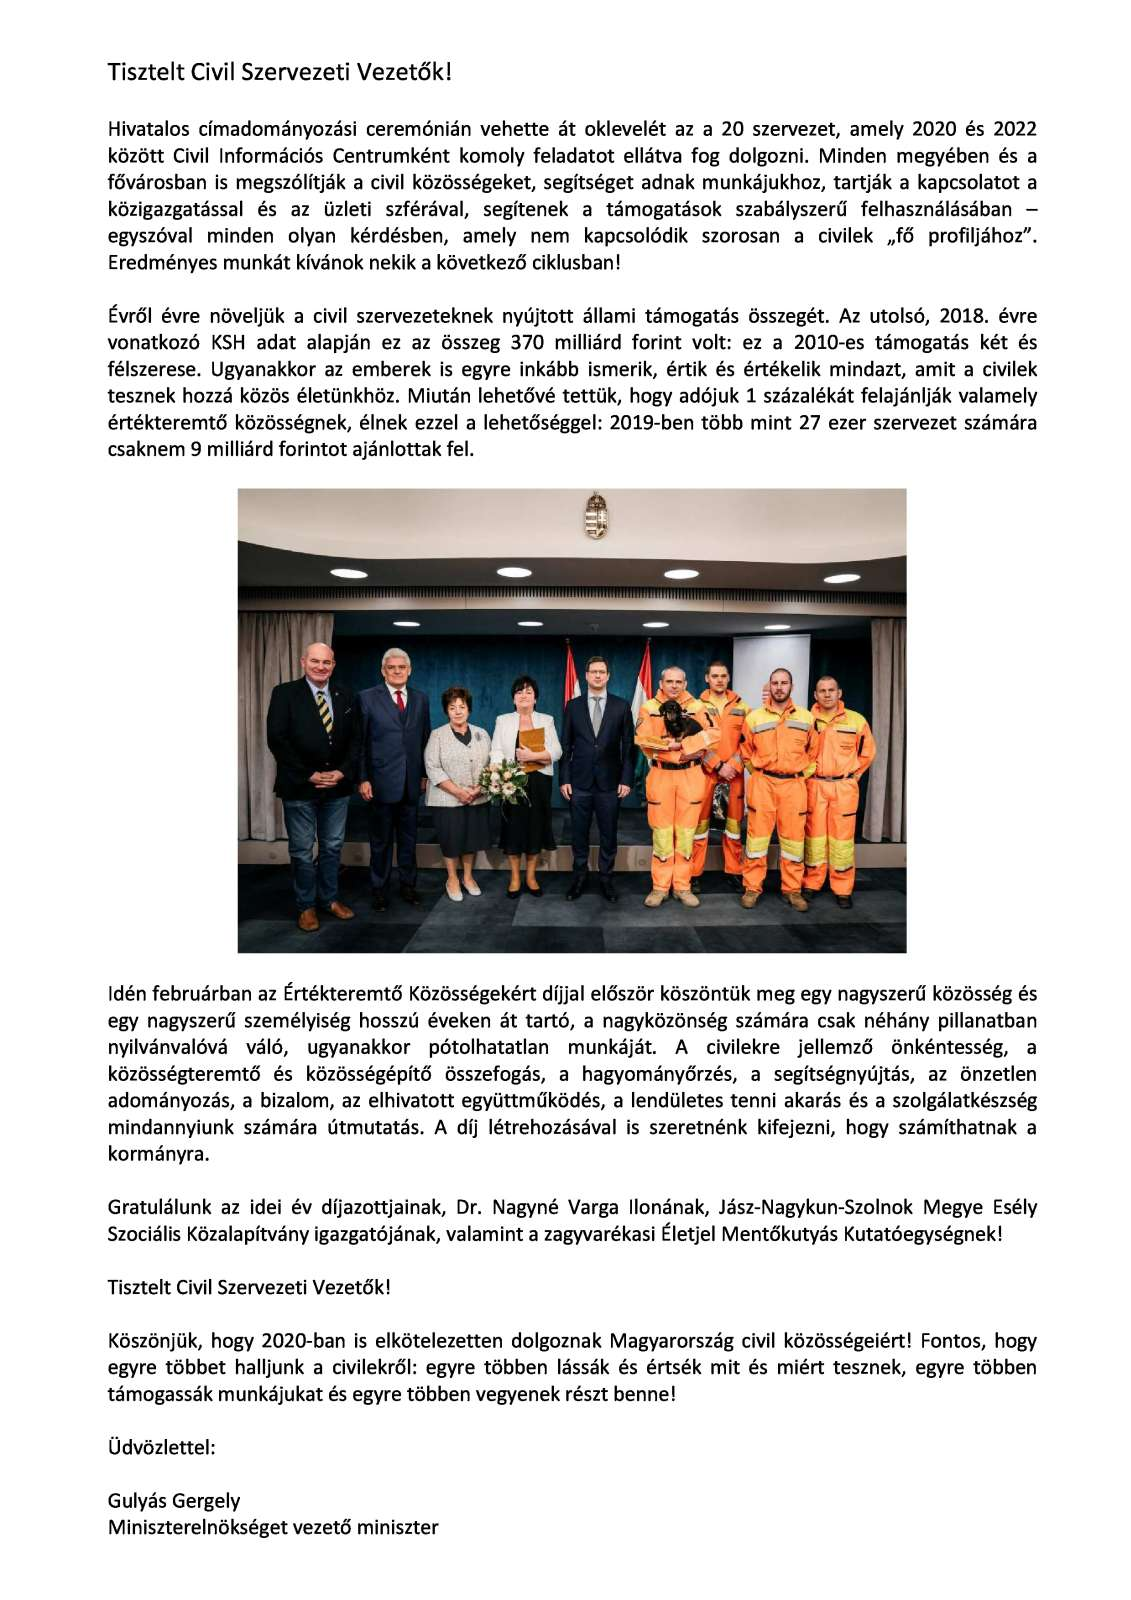 GulyasGergely_CIC_hirlevel_marcius-page-0